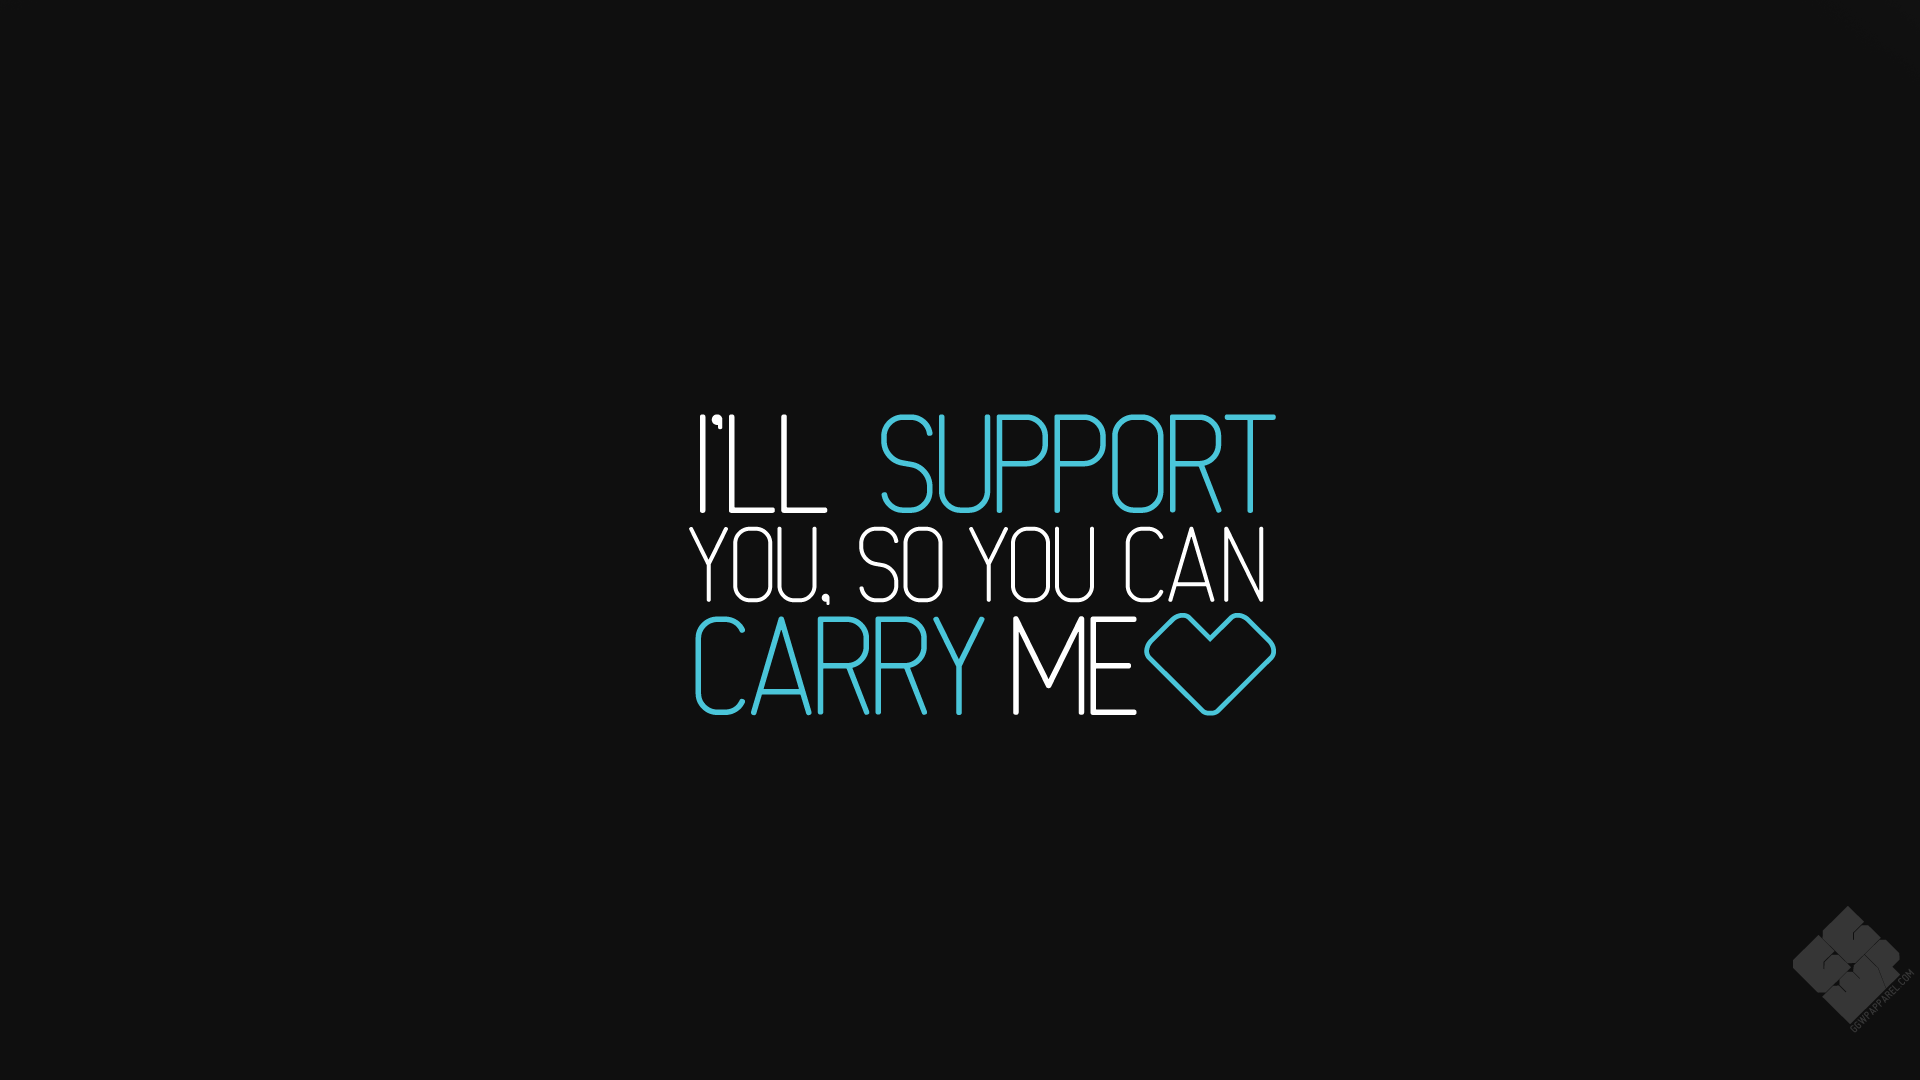 Hd wallpaper you and me - I Will Support You So You Can Carry Me